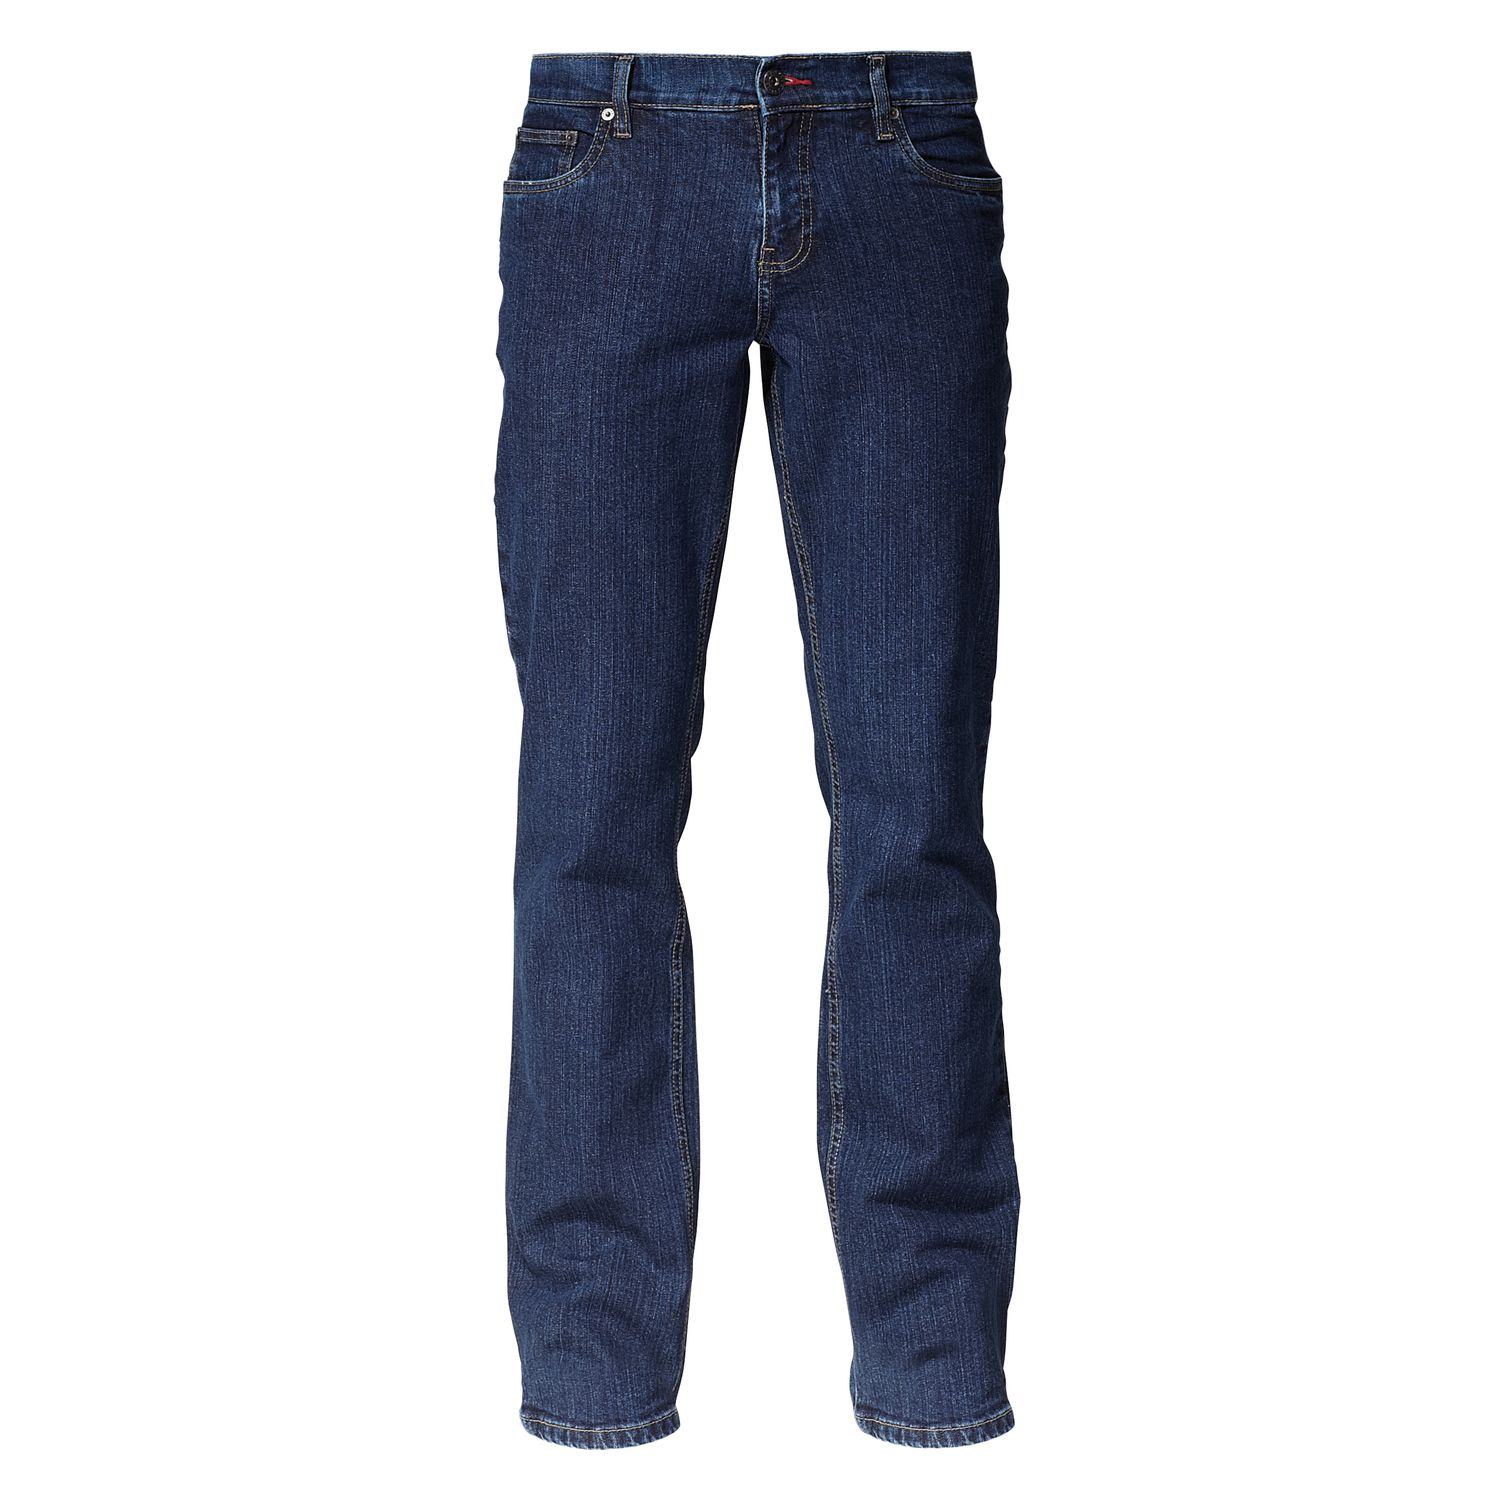 COLORADO DENIM Jeans dunkelblau | 30/30